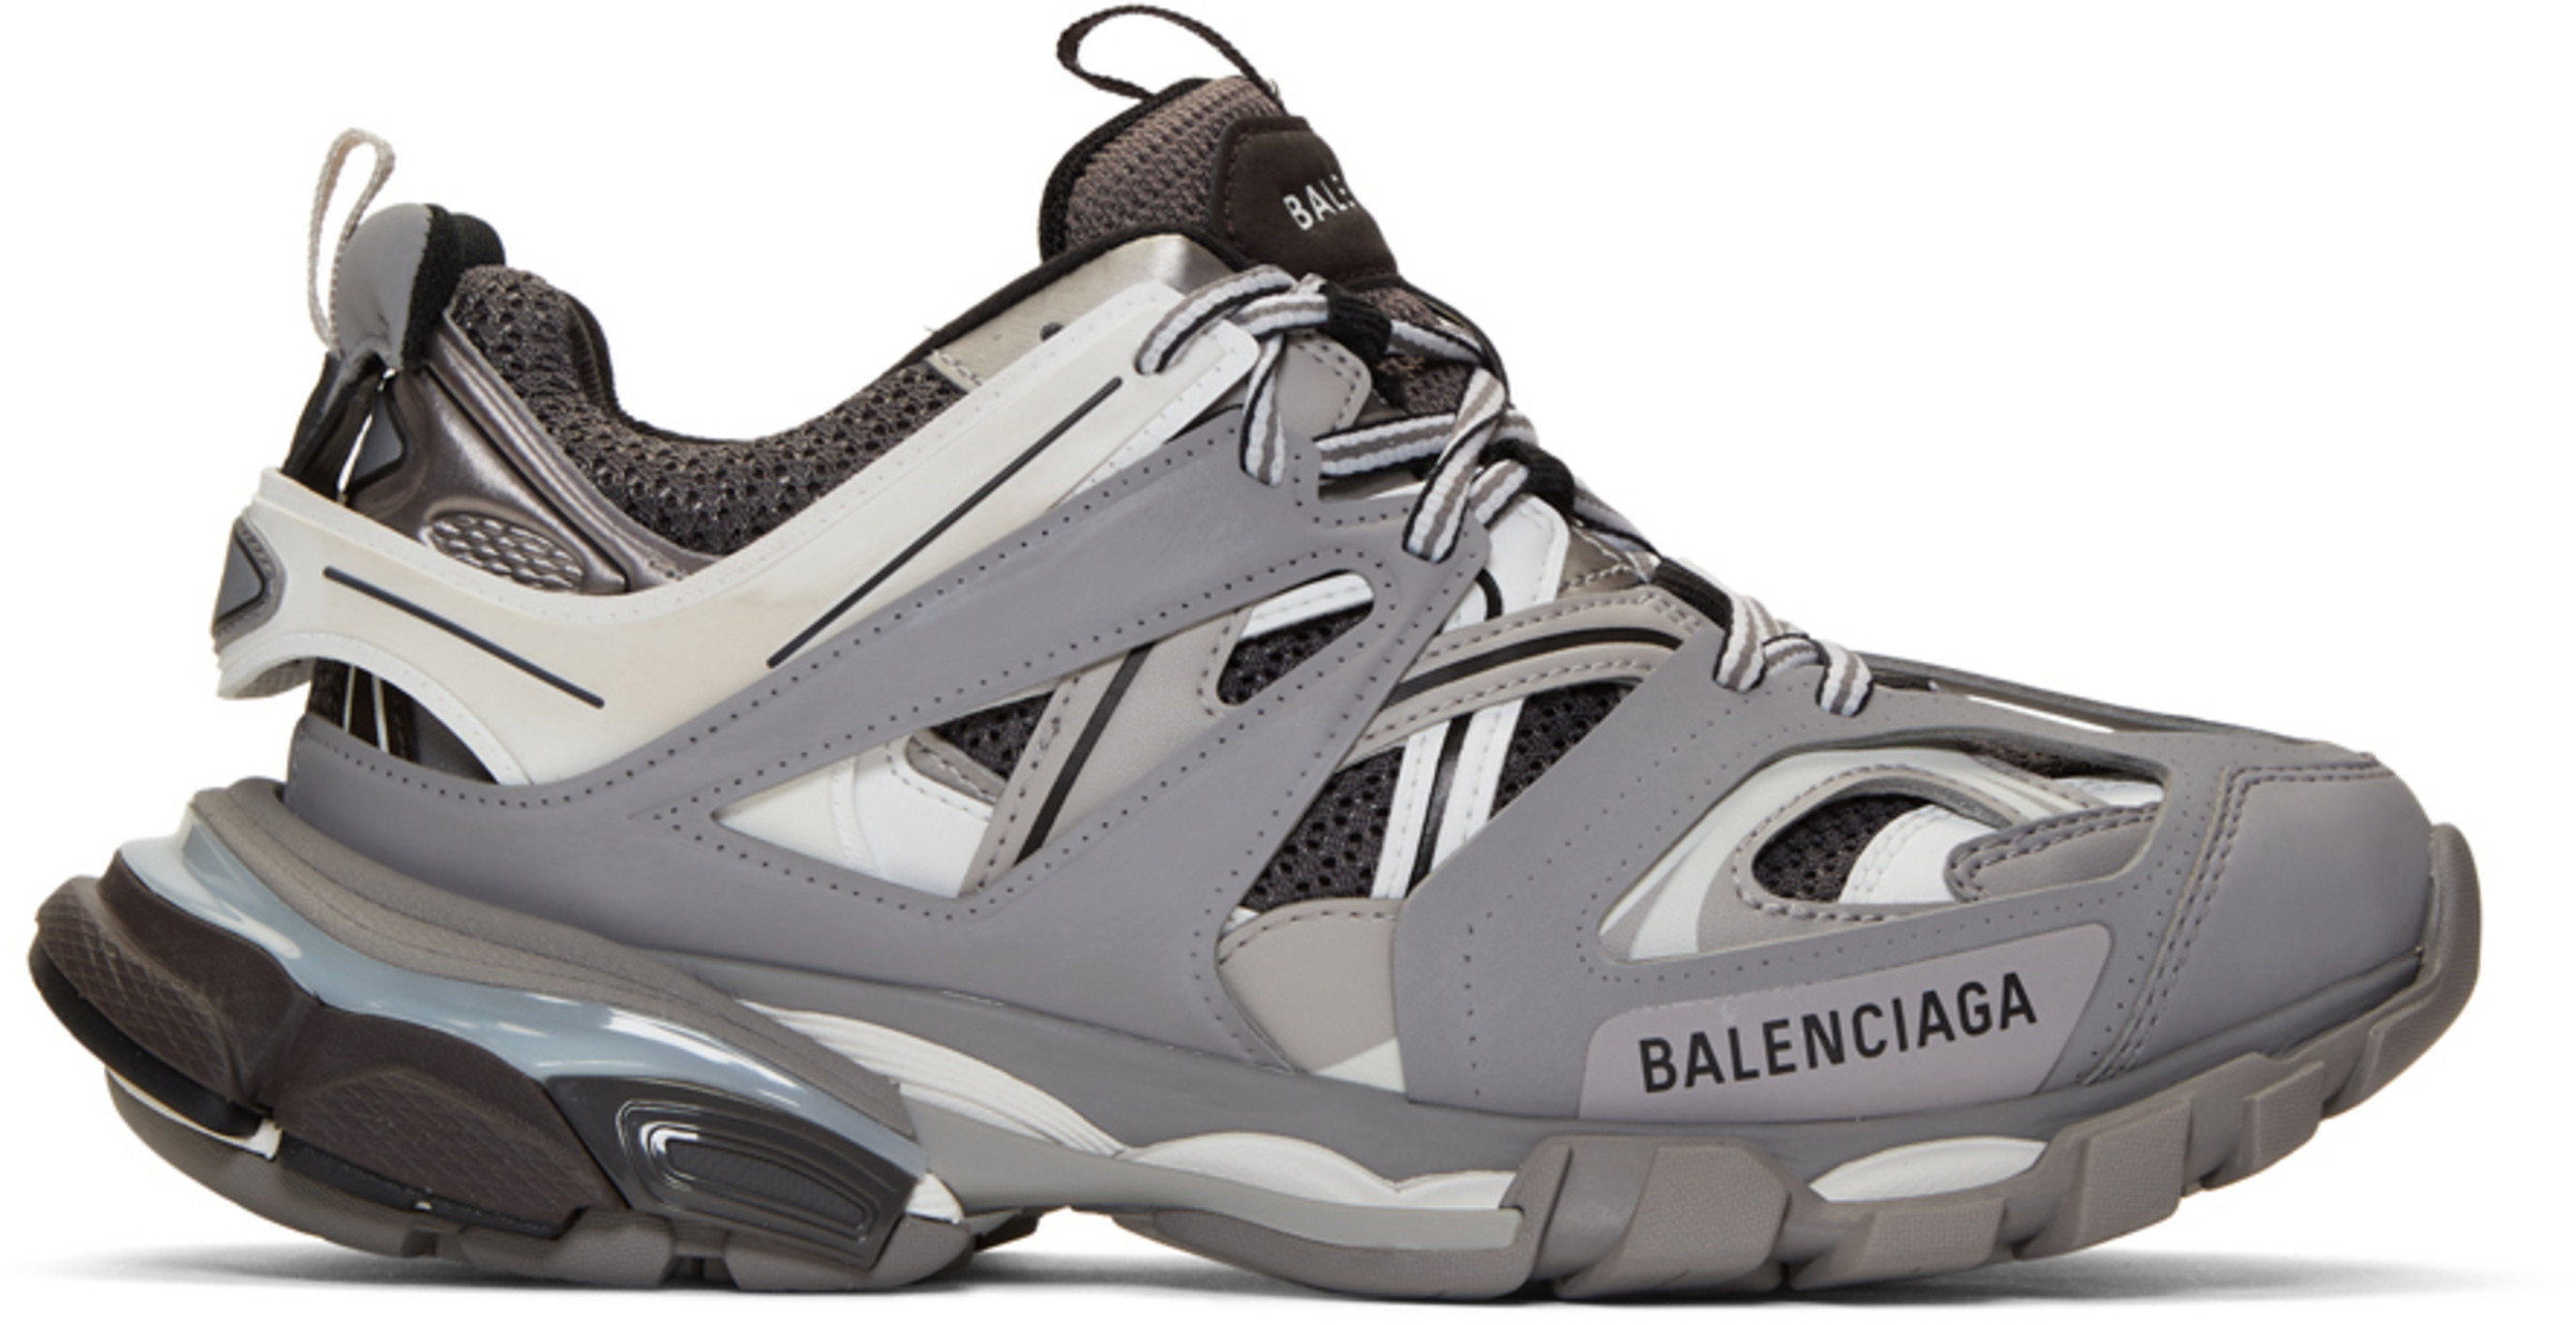 93bb00f8209 Balenciaga shoes for Men